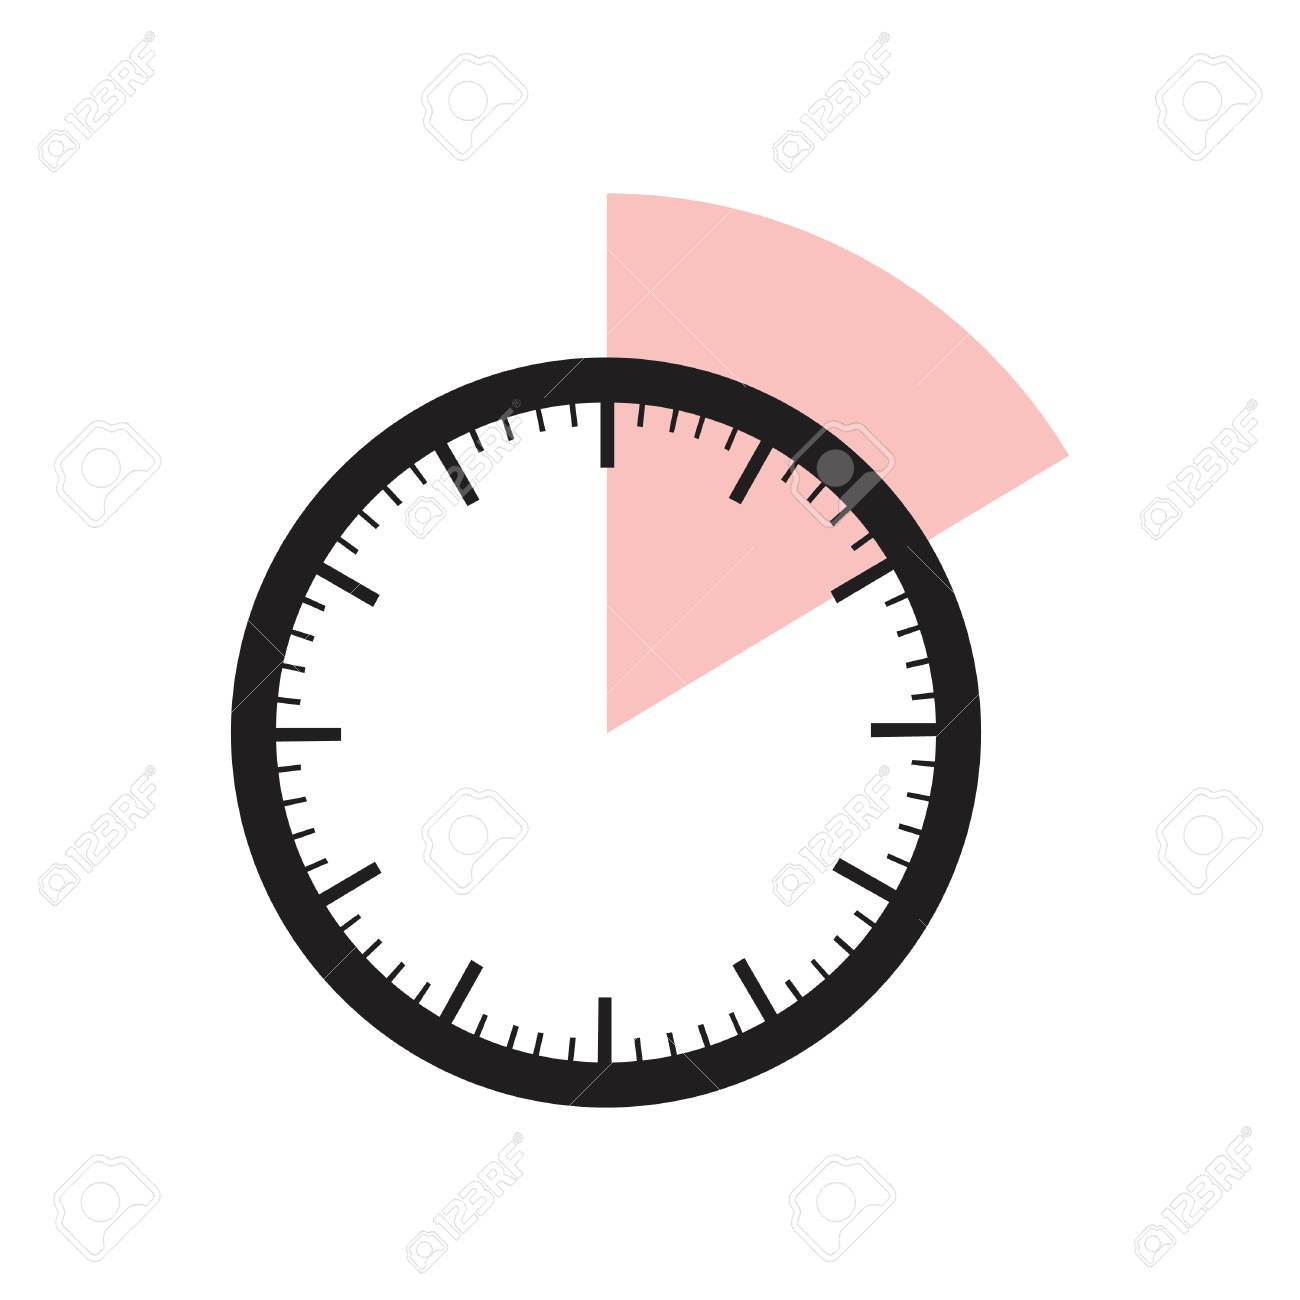 10 minutes timer office clock with pink 10 min segment stock vector 71529778